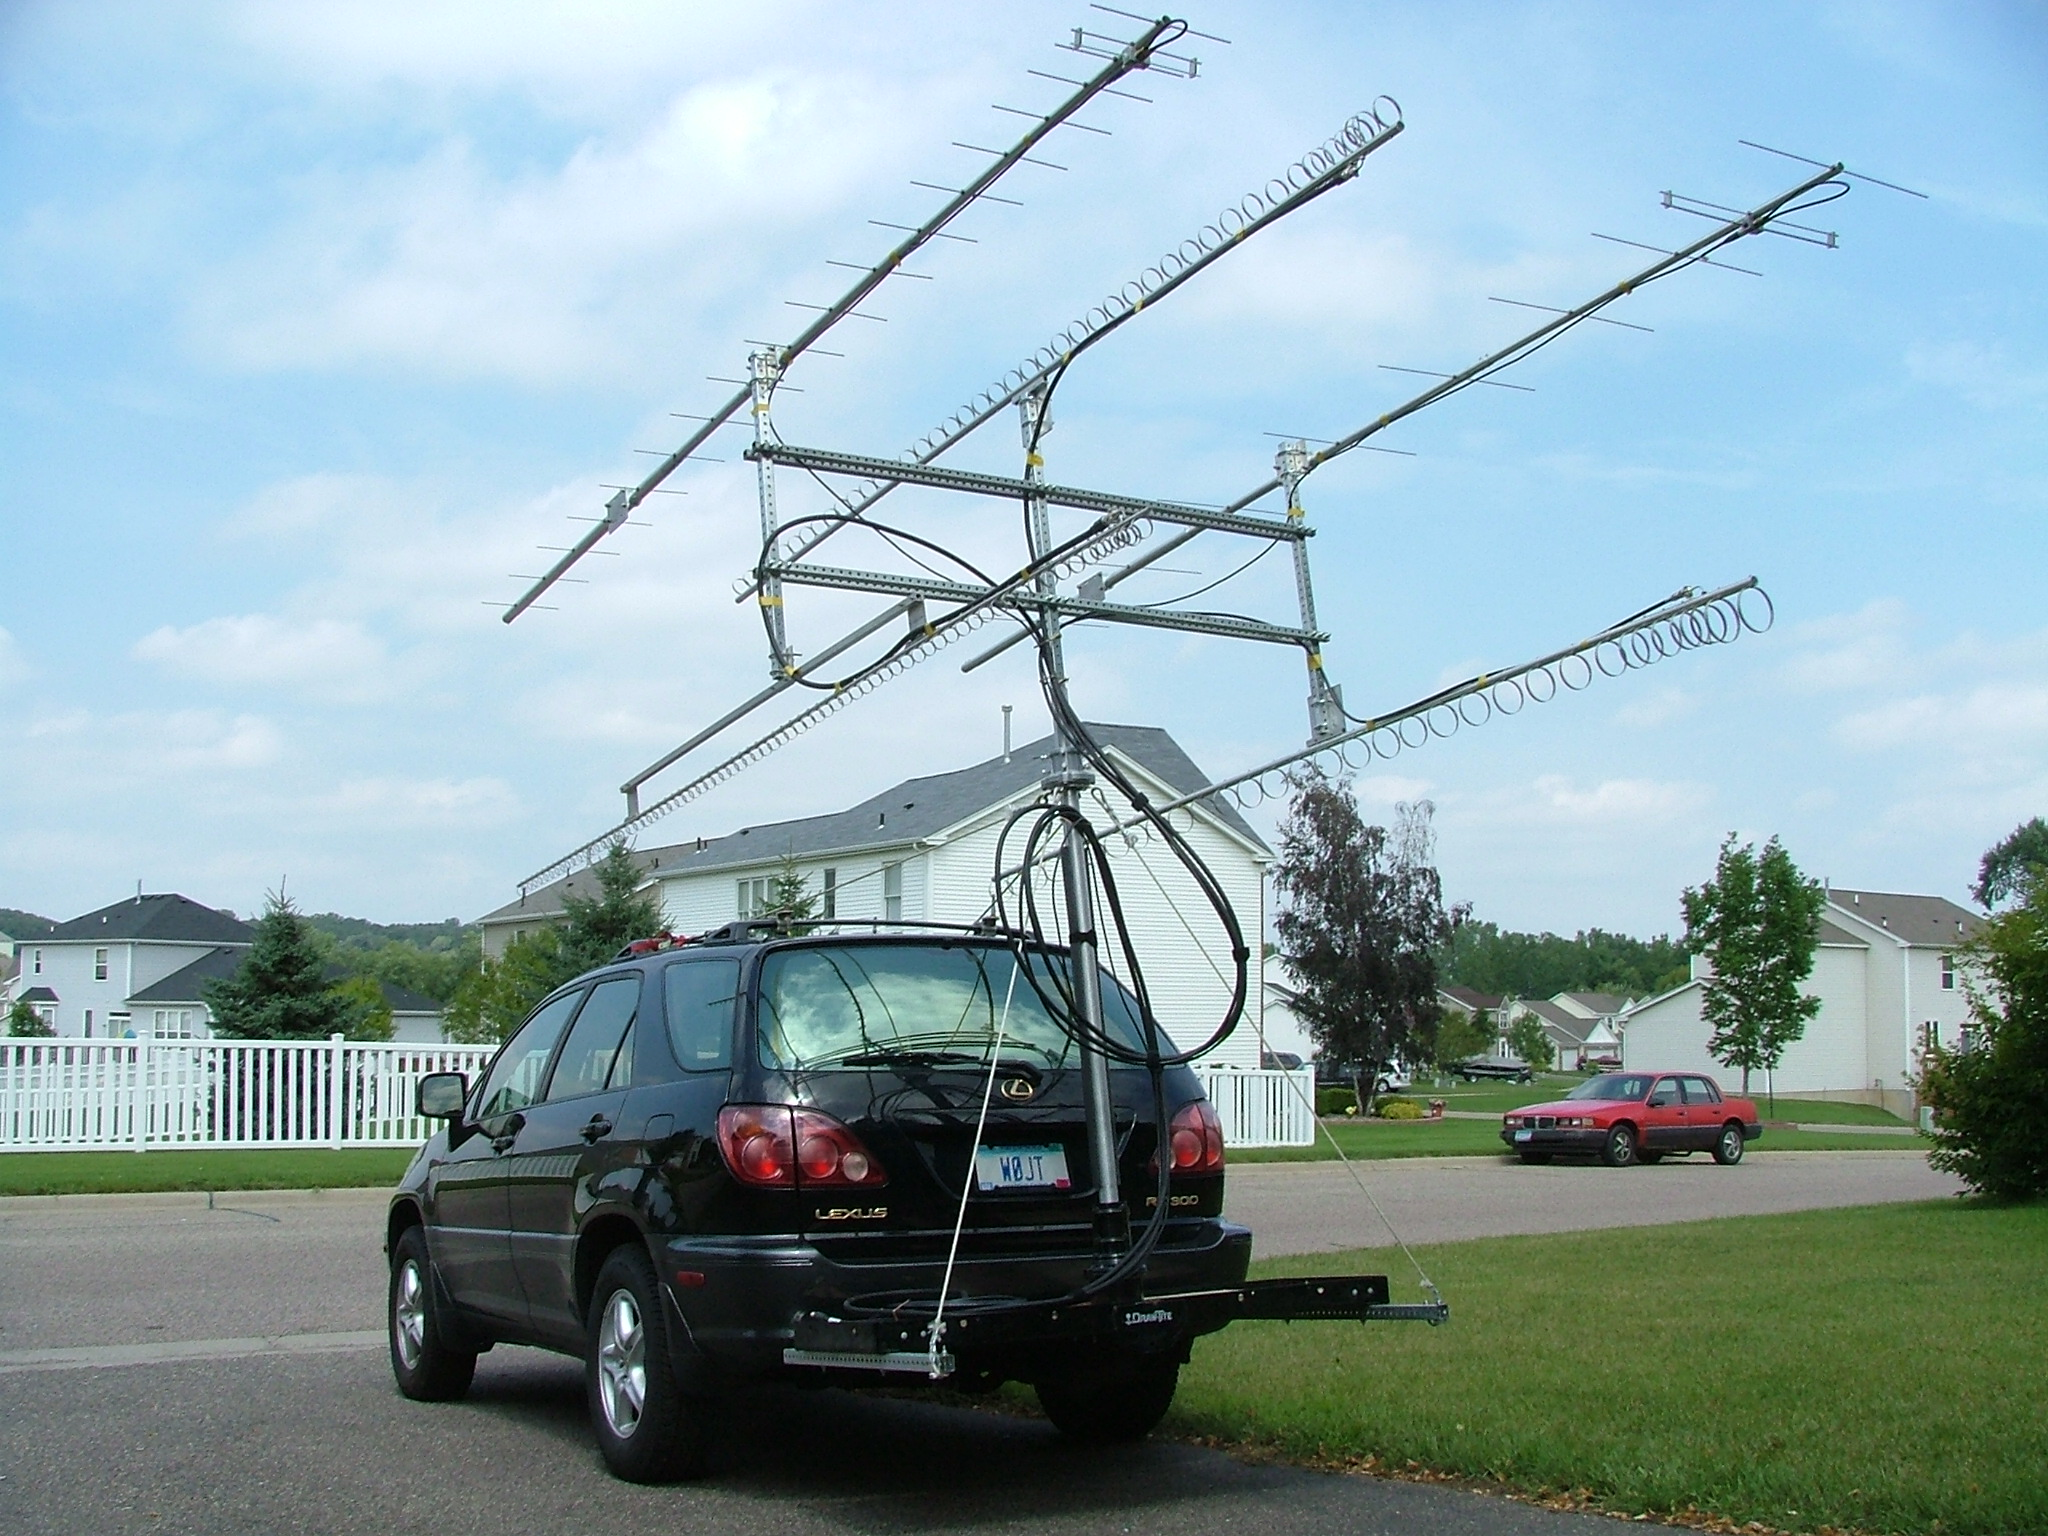 Big Wheel Antennas e moreover Uhf Vhf Frequencies Chart further Lite Link Portable Vhf Repeater Package also 141916419655 together with 295912 Anyone Recognize Vehicle. on two way radio vhf antenna